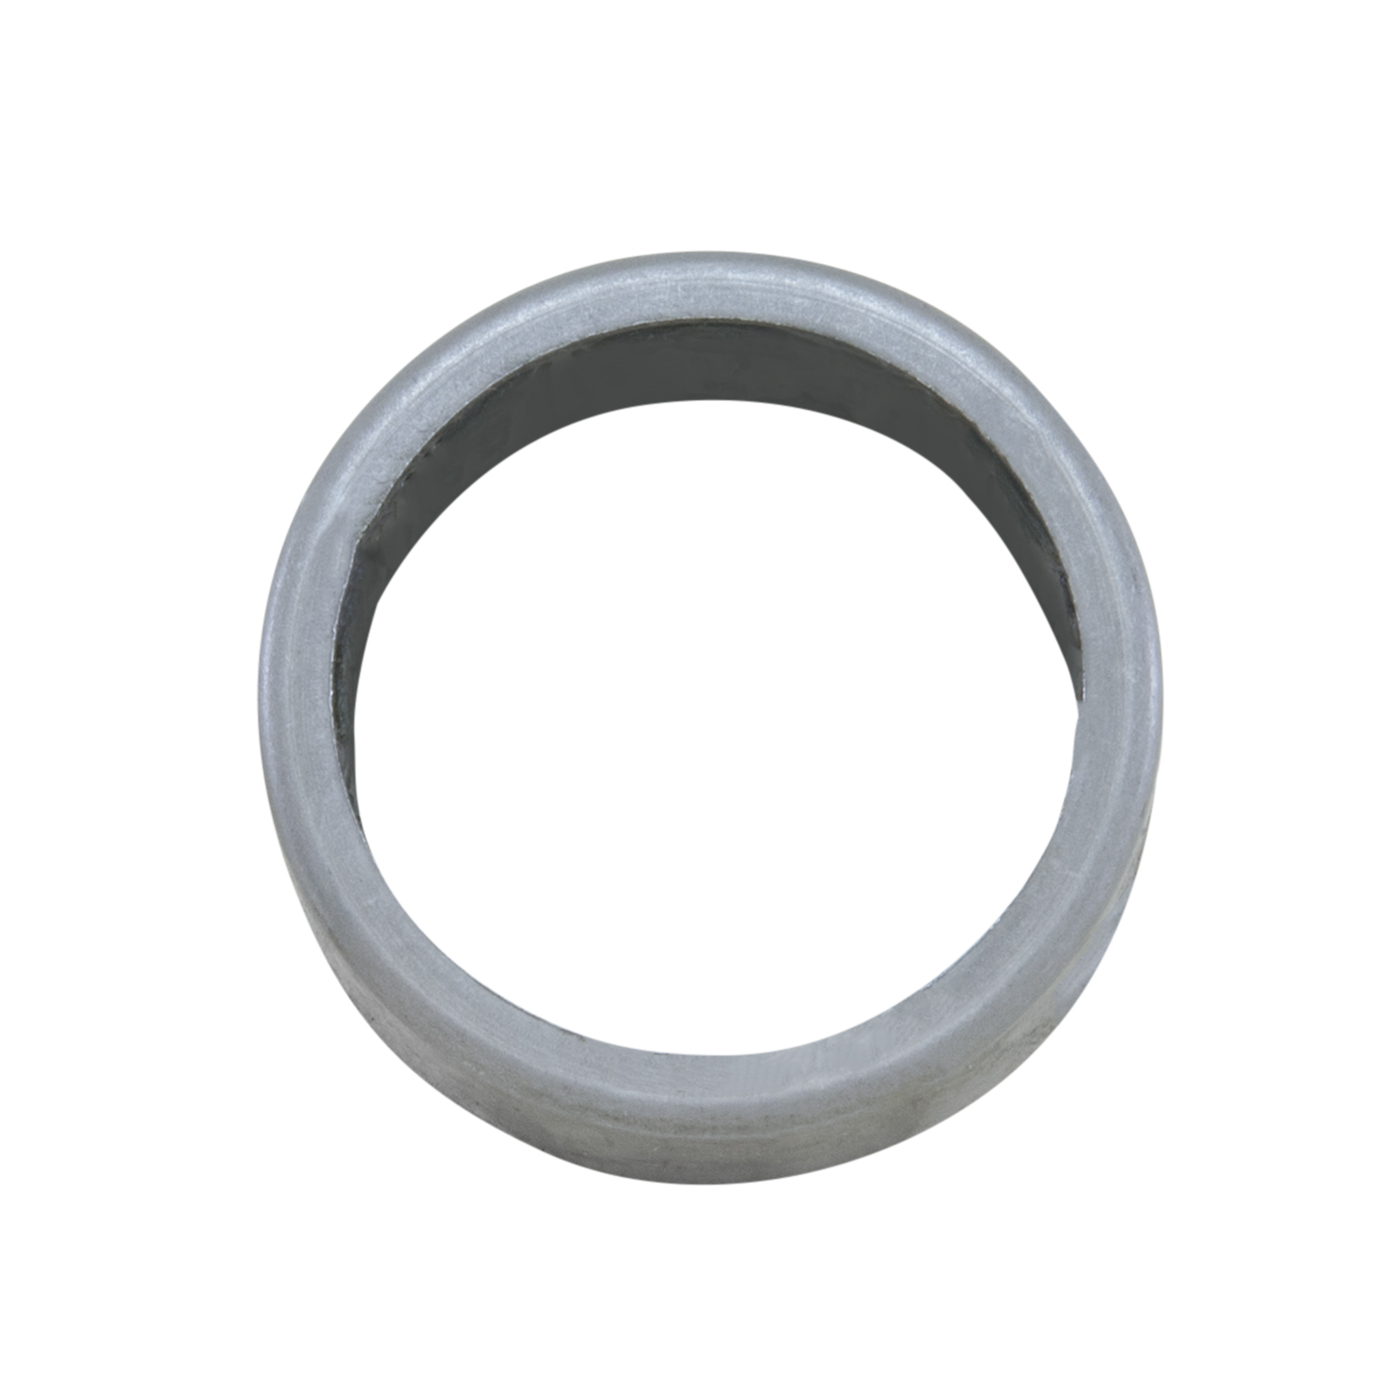 YSPSP-020 - Spindle bearing for Dana 44